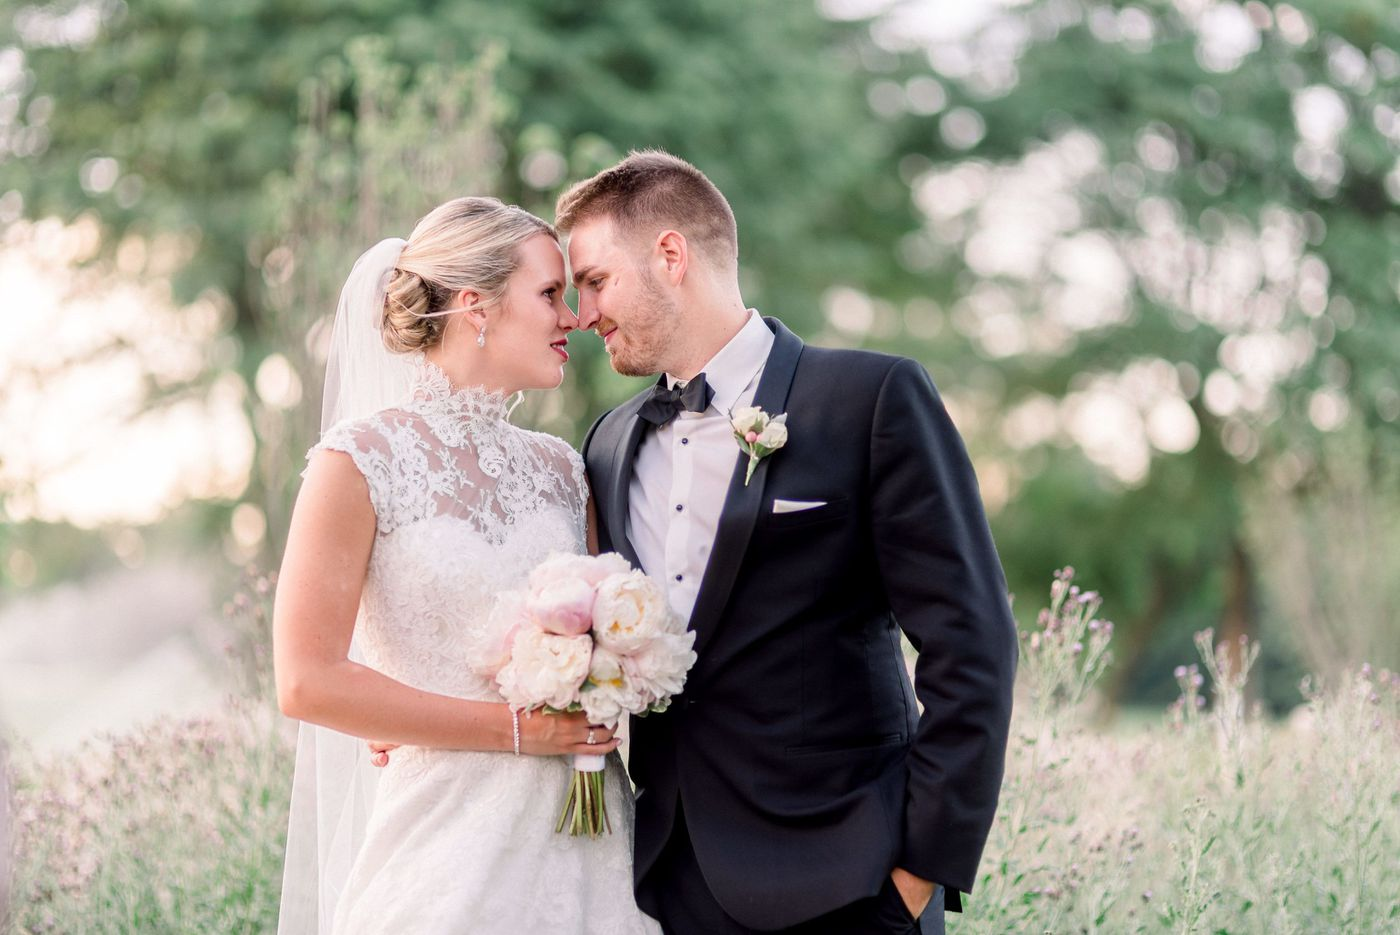 Philadelphia weddings: Erin Pealer and Andrew Wagner